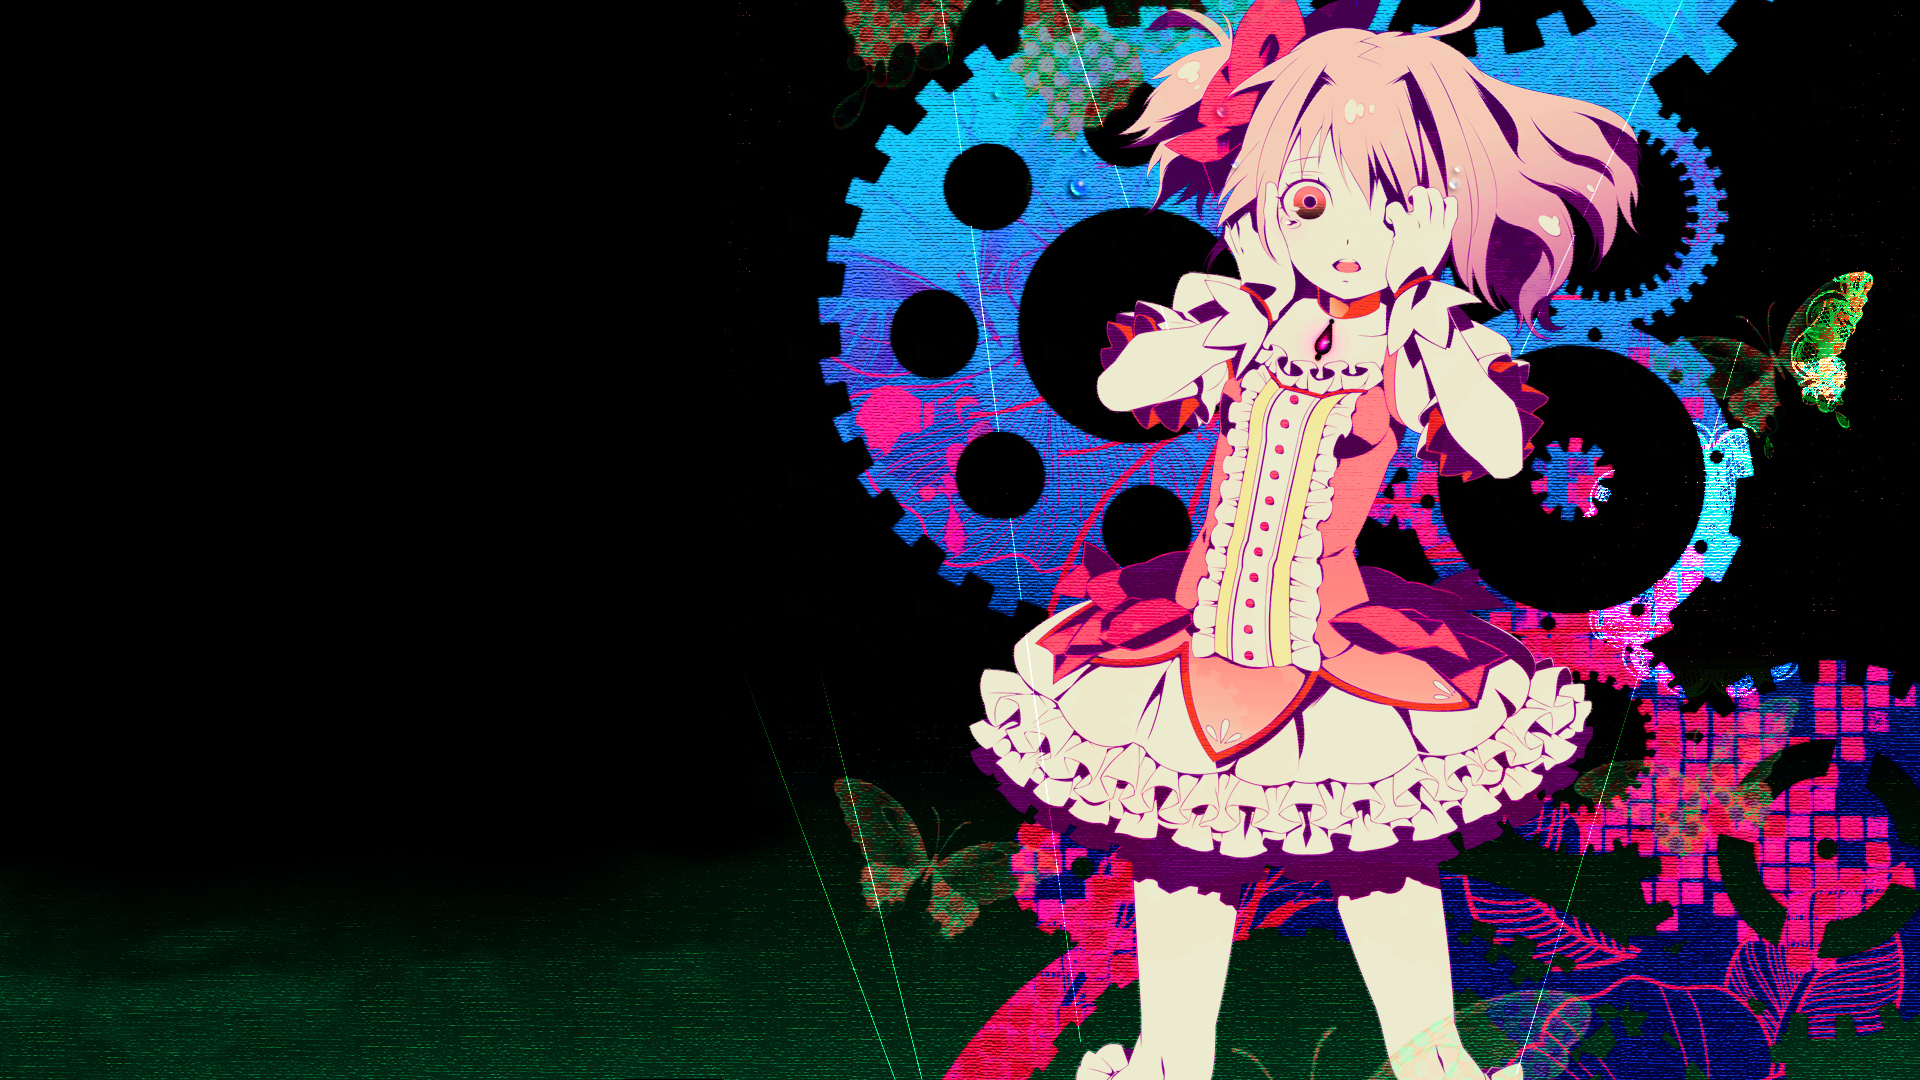 One-of-my-favorite-backgrounds-Madoka-Magica-1920x1080-Need-iPhone-S-Plus-Backg-wallpaper-wp3808881